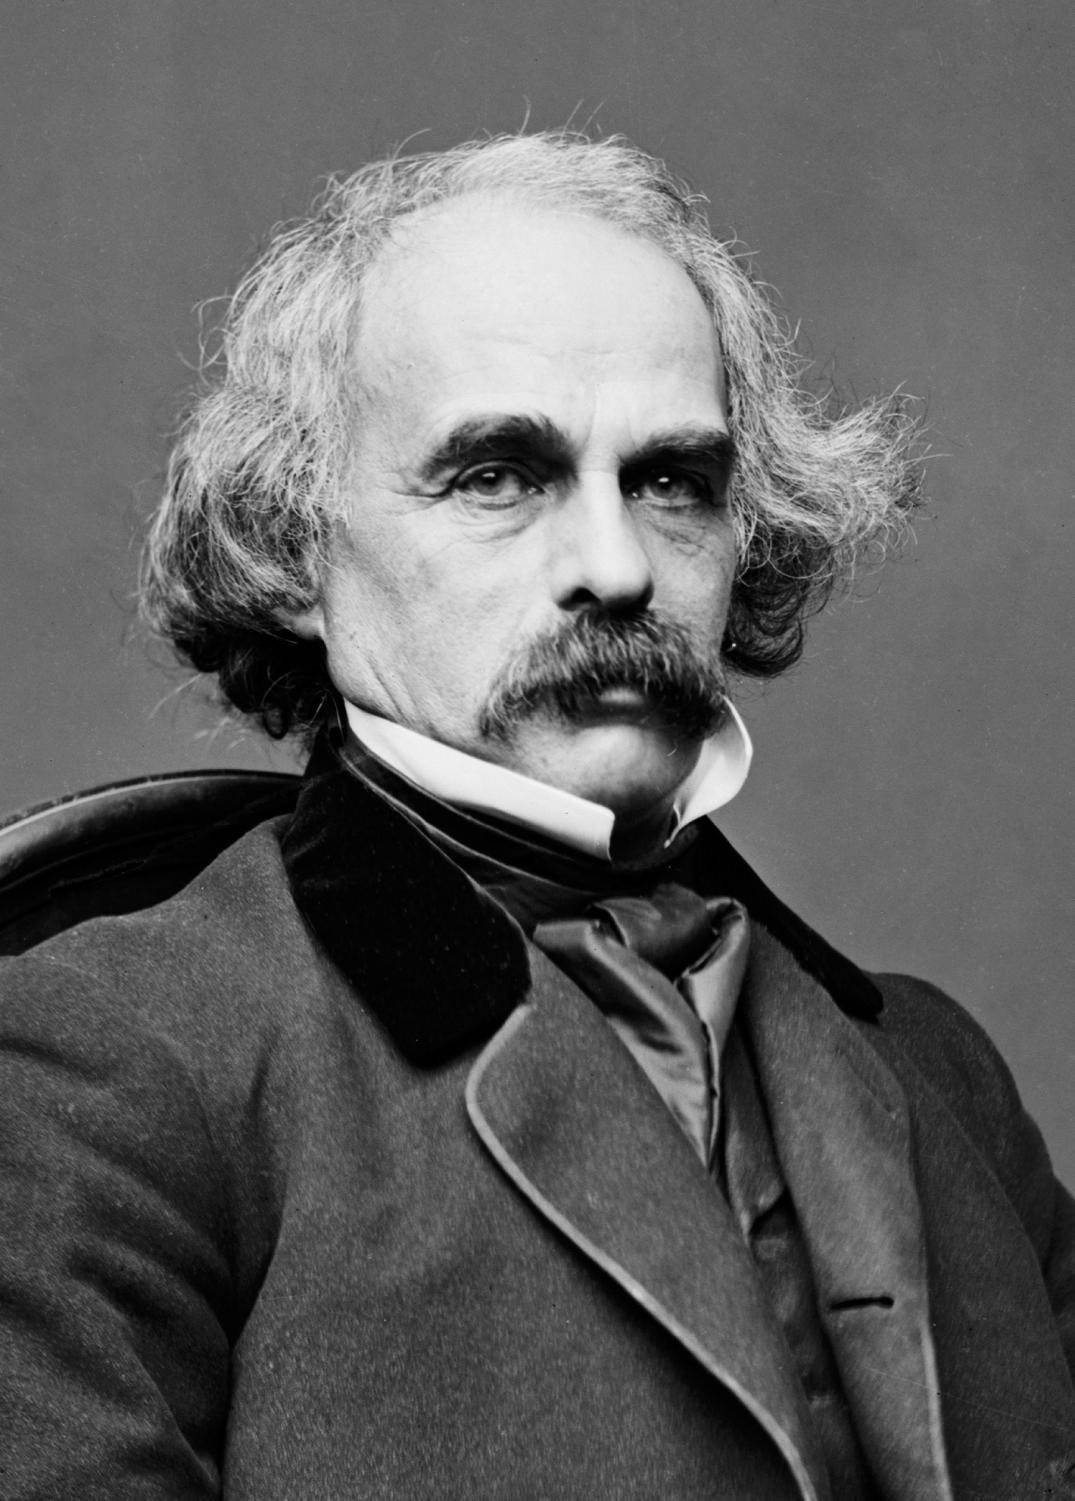 Nathaniel Hawthorne was an American novelist, dark romantic, and short story writer. His works often focus on history, morality, and religion. He was born in 1804 in Salem, Massachusetts, to Nathaniel Hathorne and the former Elizabeth Clarke Manning.